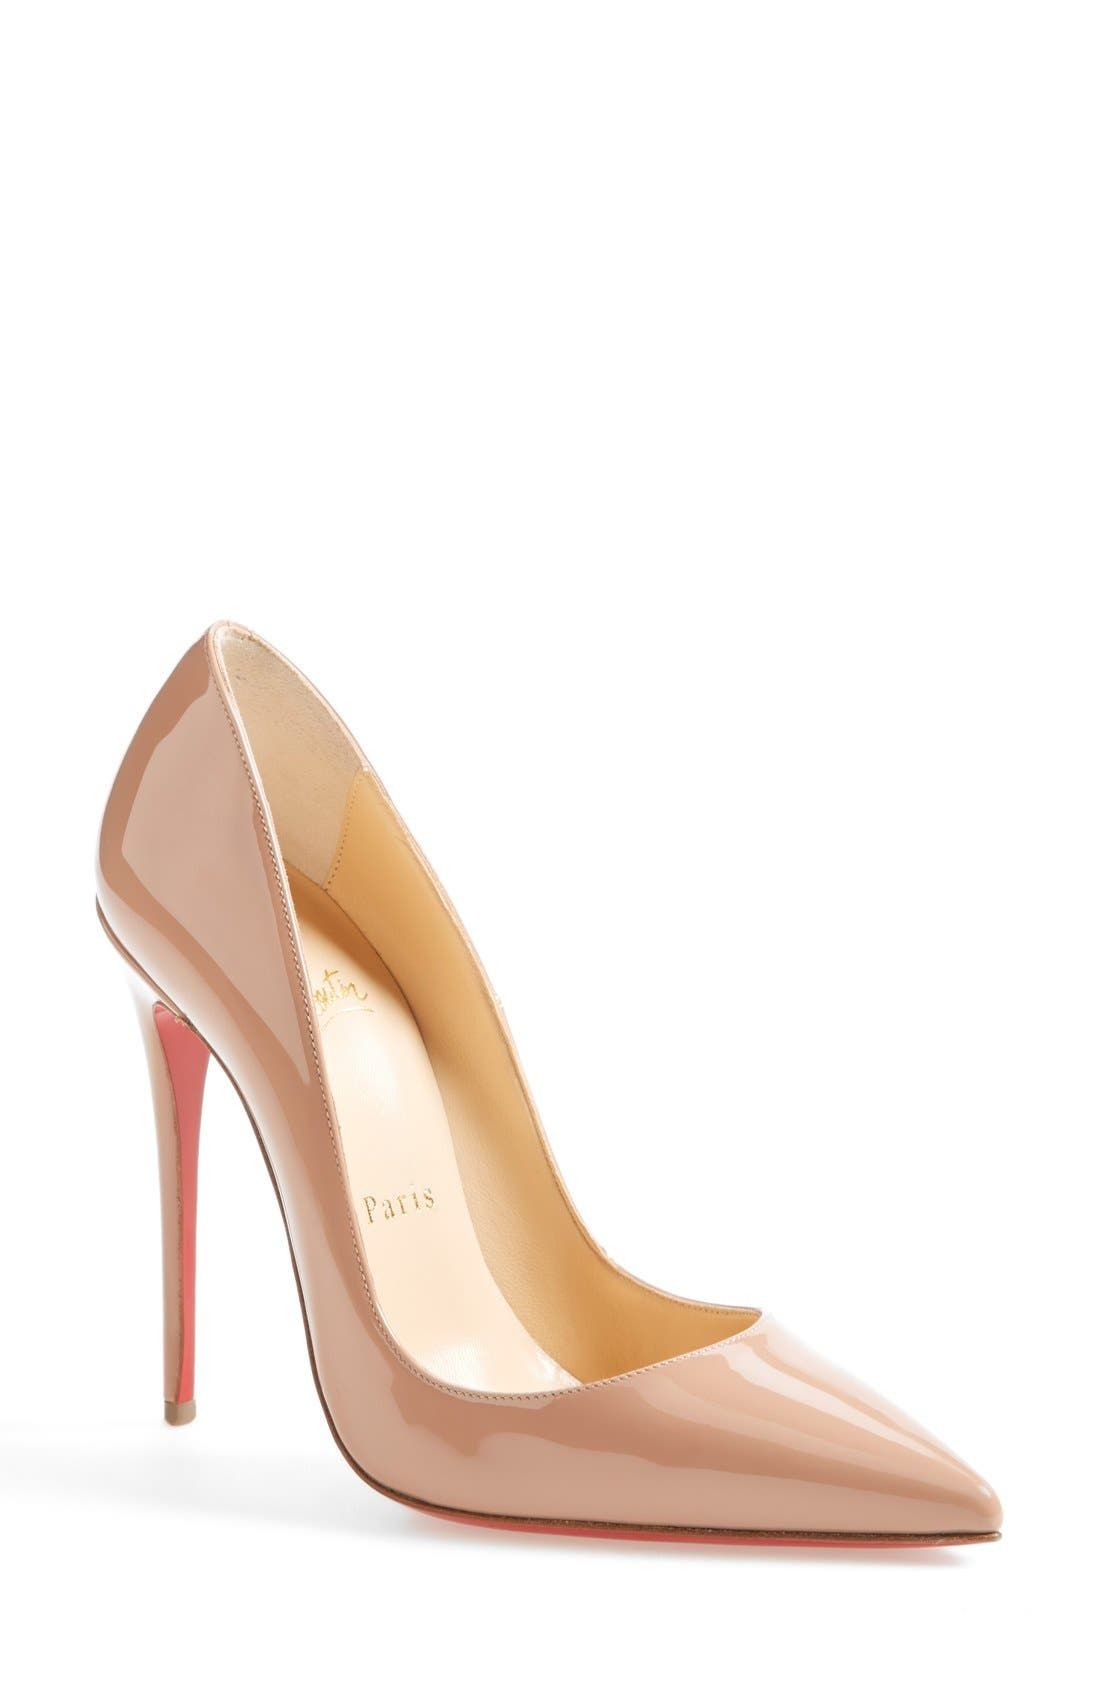 'So Kate' Pointy Toe Pump,                             Main thumbnail 1, color,                             Nude